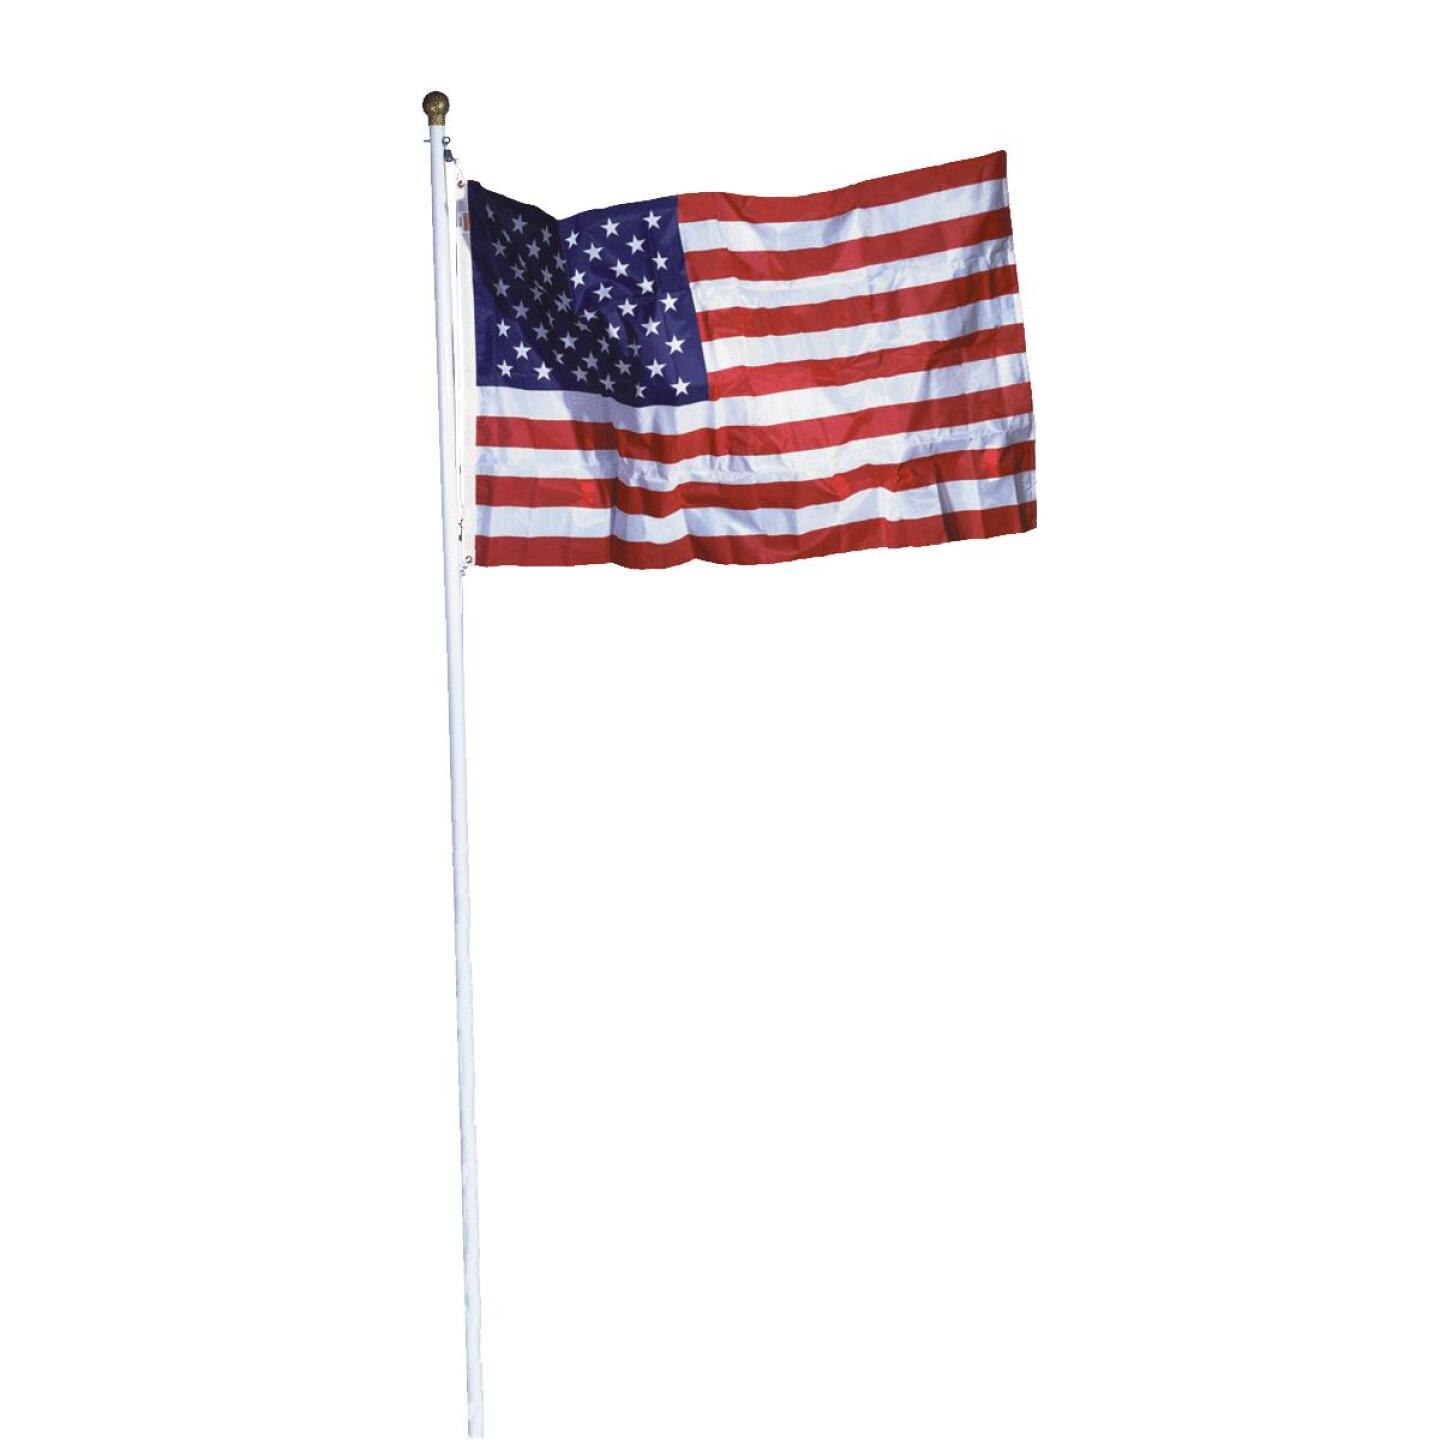 Valley Forge 3 Ft. x 5 Ft. Polycotton American Flag & 18 Ft. Pole Kit Image 1